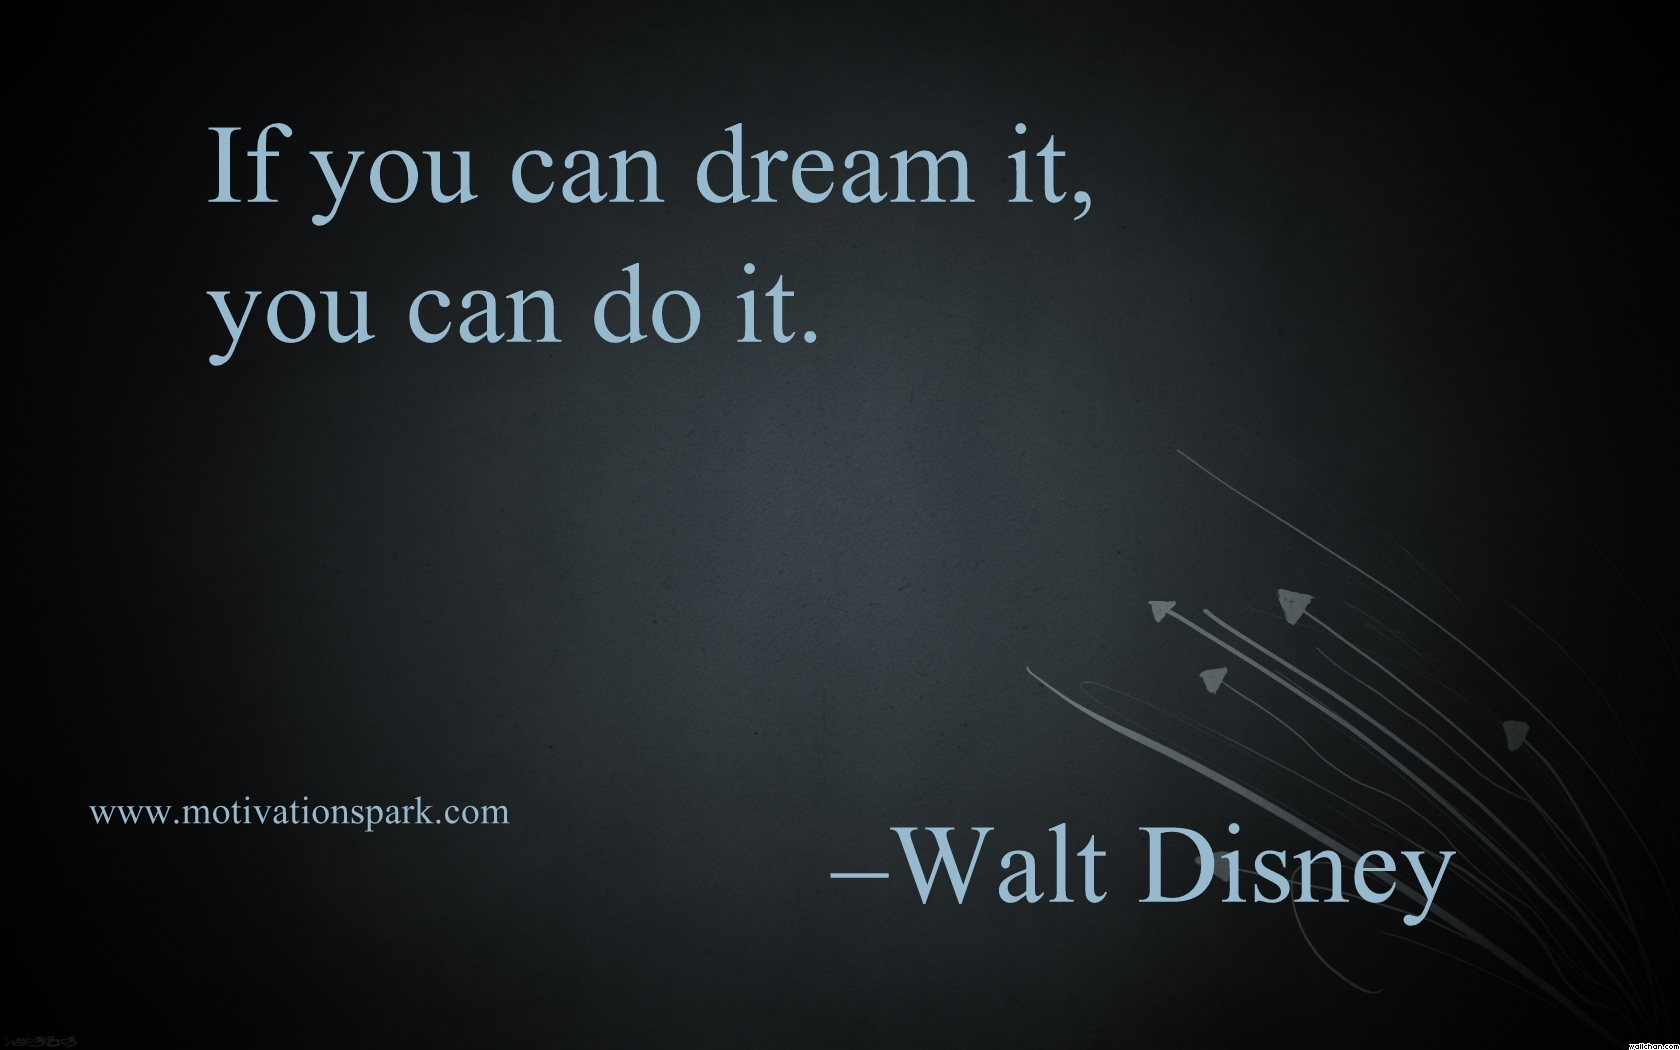 Walt Disney Quotes Wallpaper Quotesgram